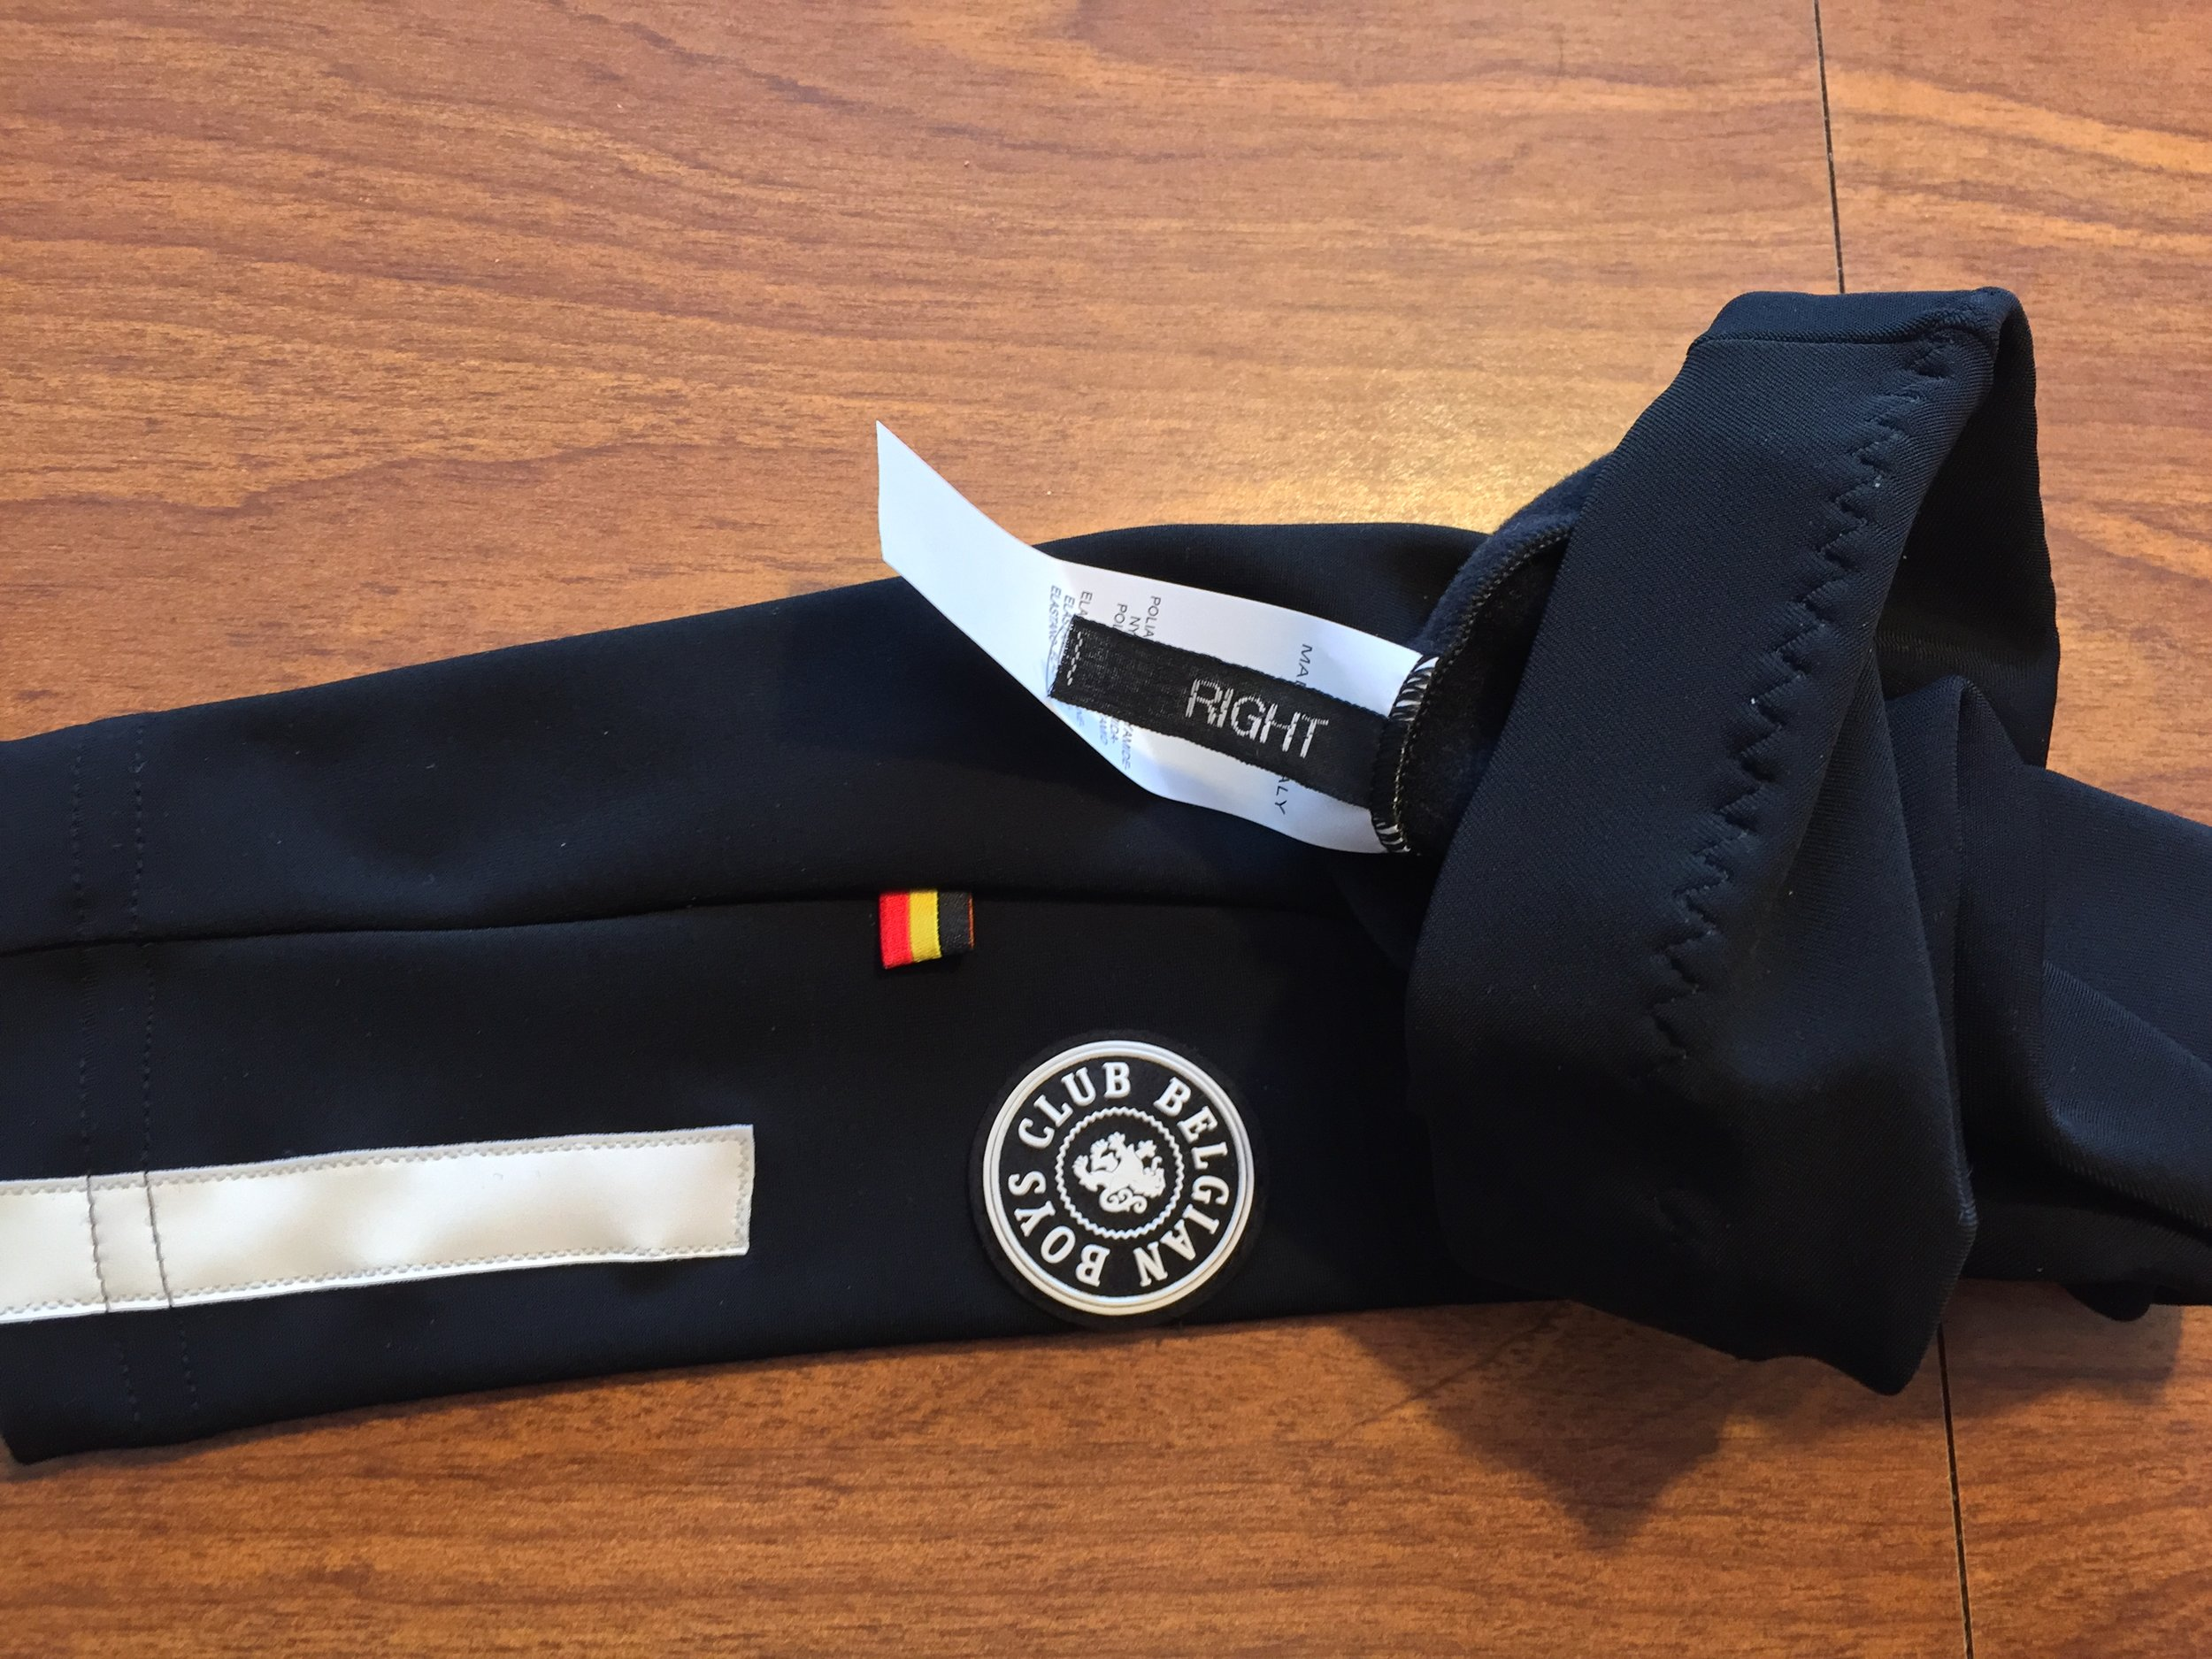 Belgian Boys Club Eddy warmers come with side-specific fit. Here the arm warmers tags show not only the side, but also the Made in Italy tag. Also featured on the arm warmers are the reflectors on the cuff.